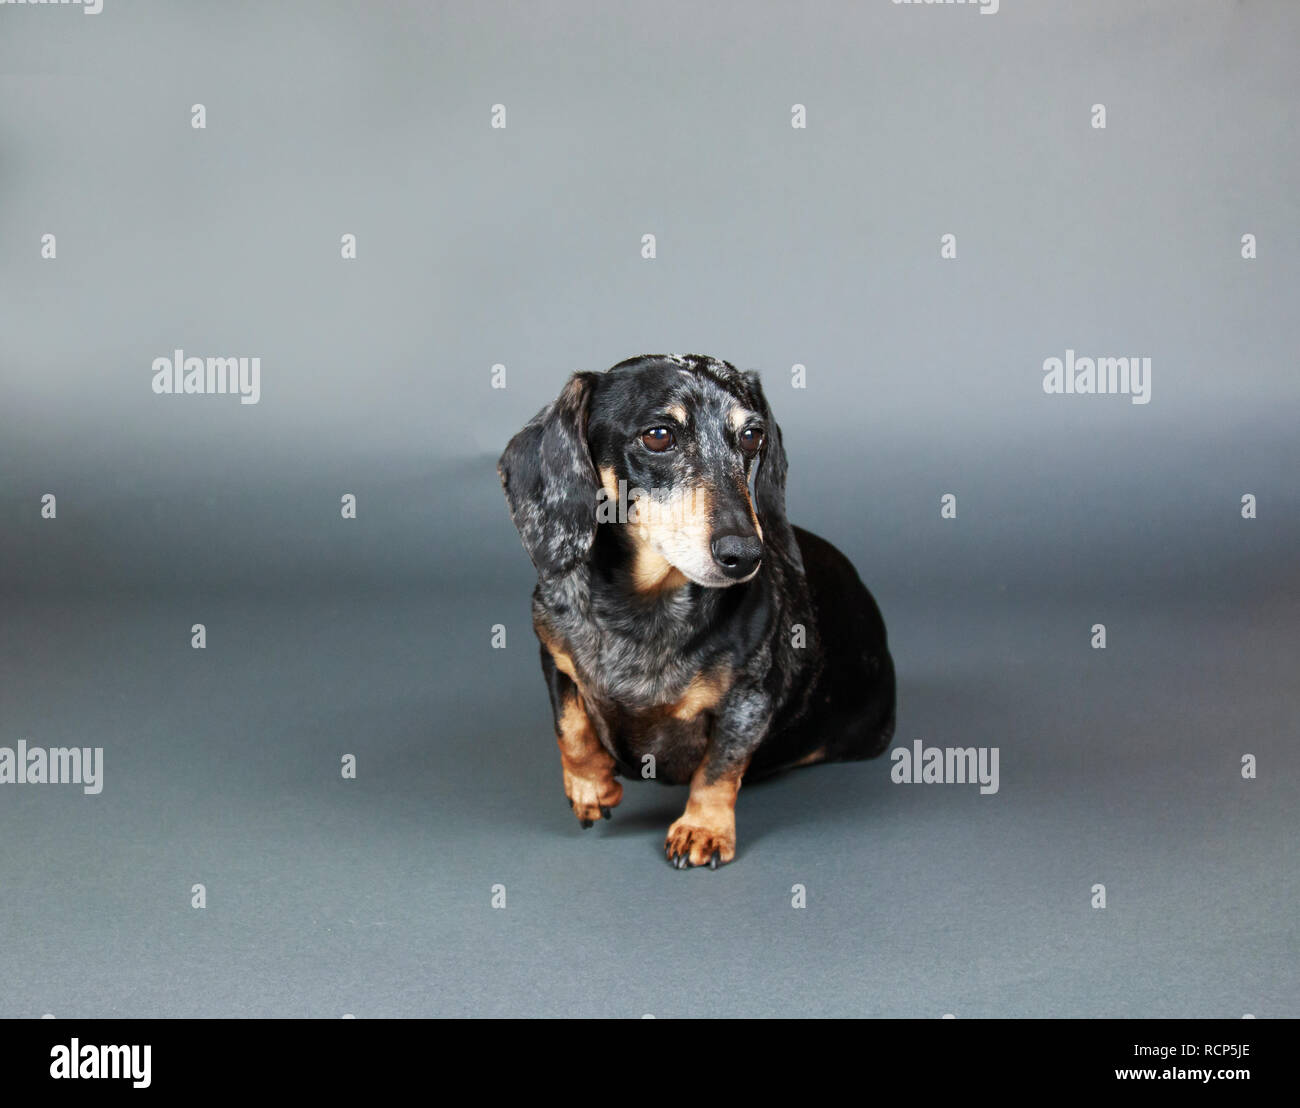 Small Black and Tan dachshund raising paw and sitting on a gray backdrop. - Stock Image